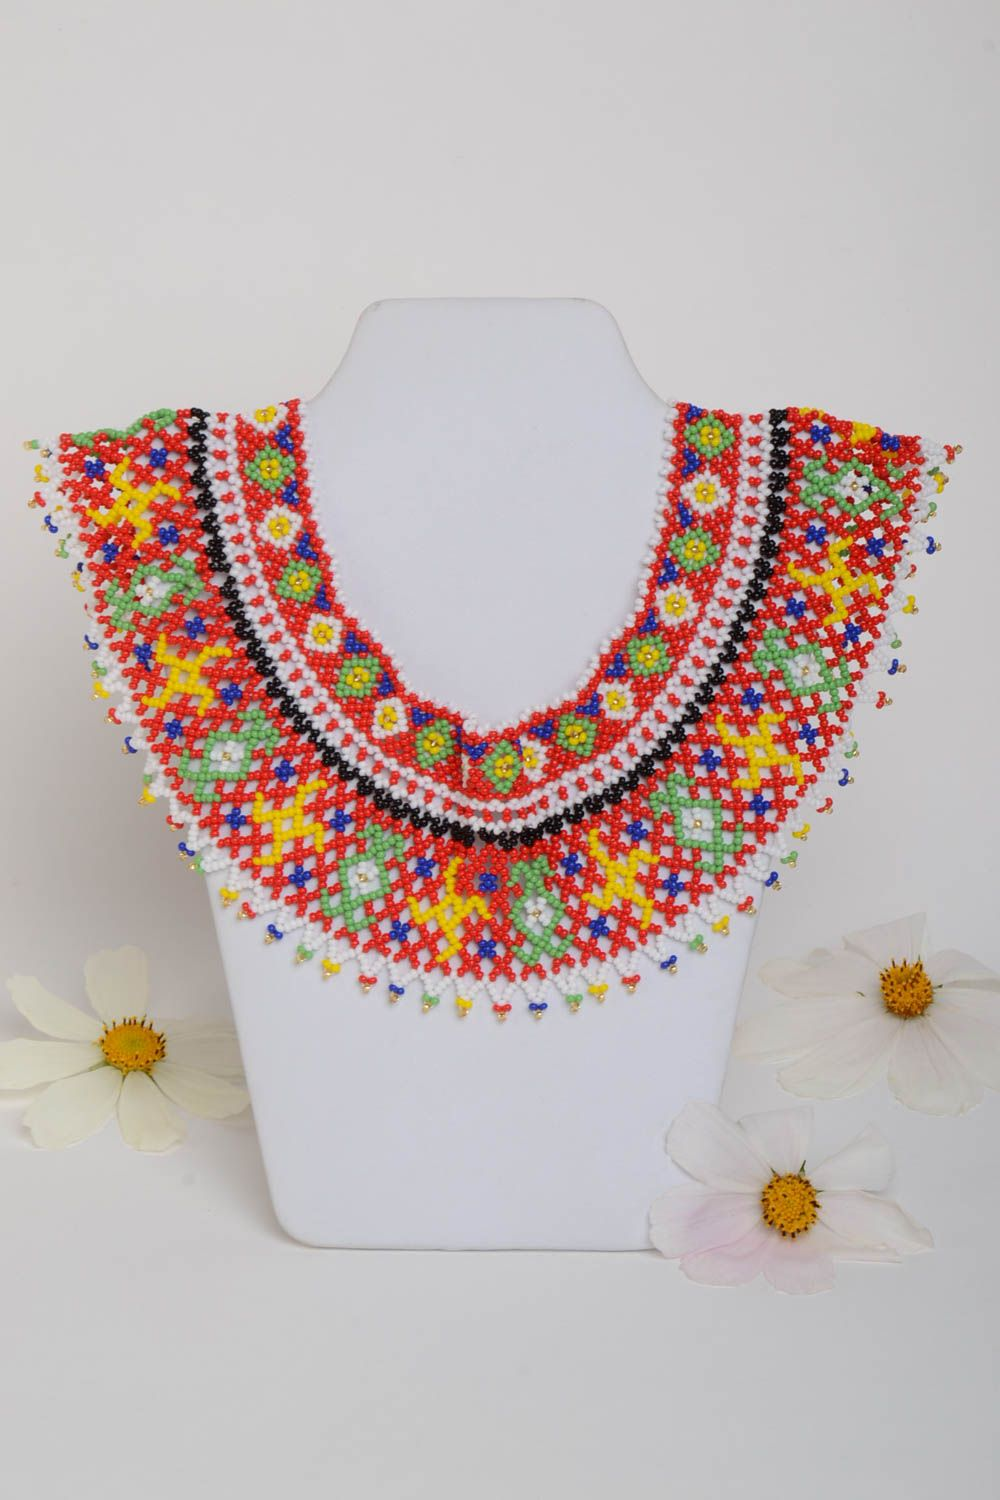 Beaded necklace handmade jewelry fashion necklaces for women designer jewelry photo 1